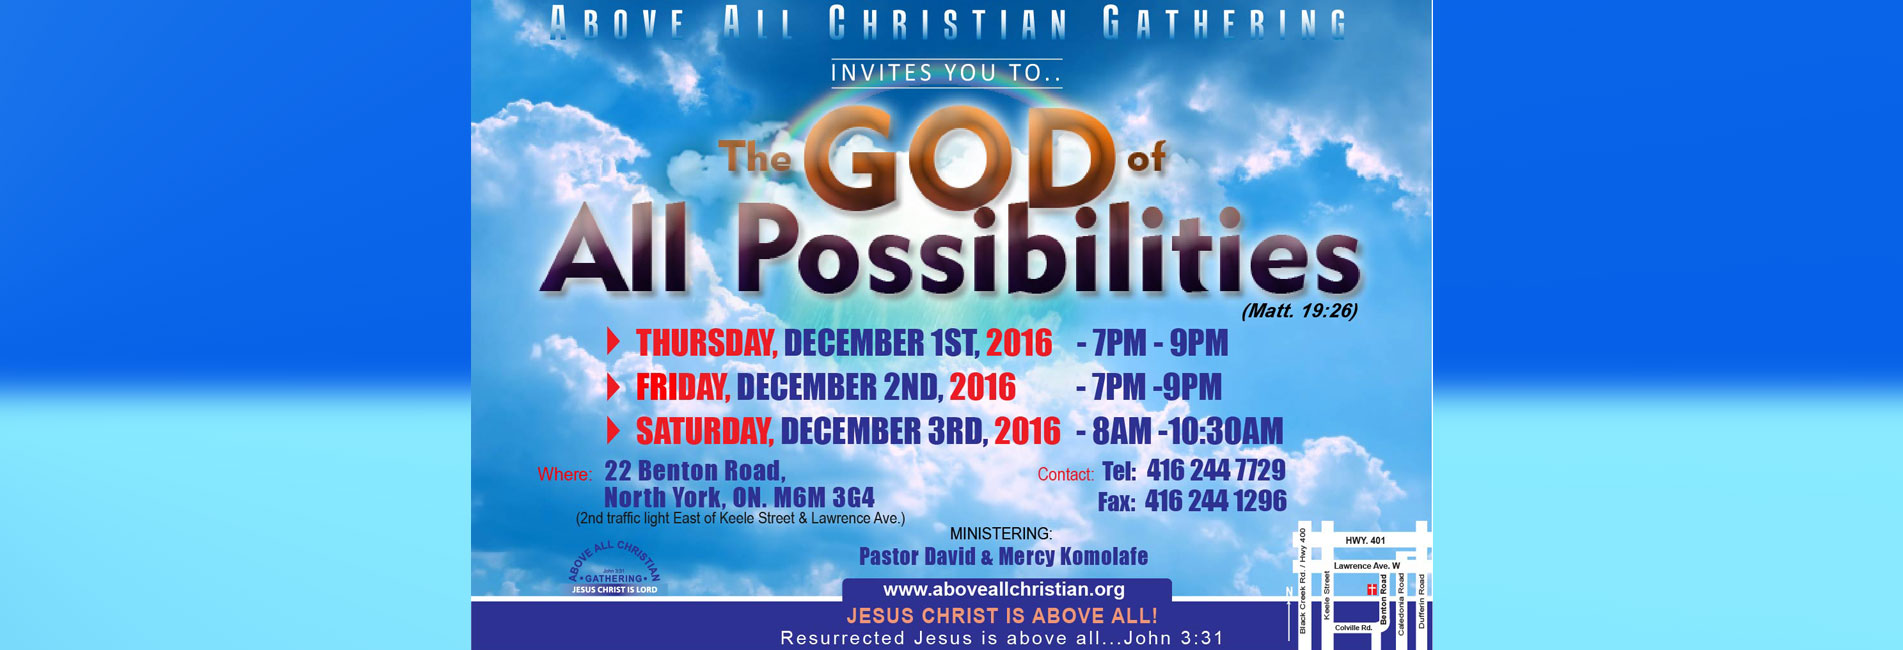 The God of All Possibilities